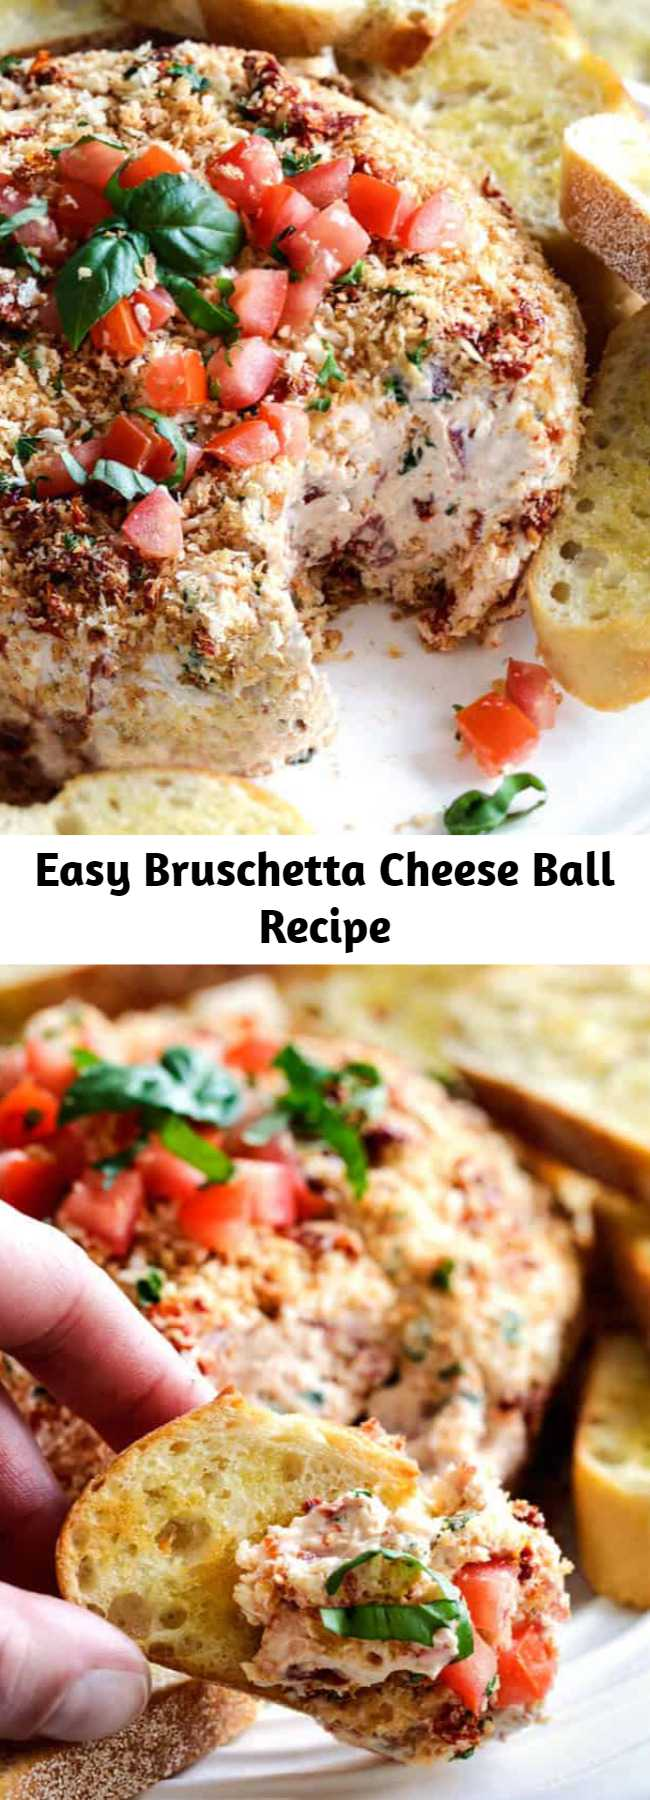 Easy Bruschetta Cheese Ball Recipe - Super easy Bruschetta Cheese Ball takes just minutes to whip up and is always a total show stopper, make ahead appetizer! #appetizer #cheeseball #bruschetta #thanksgivingrecipe #thanksgivingsides #holidaybaking #christmas #thanksgivingfood #thanksgiving #recipes #recipeoftheday #recipeseasy #easyrecipe #appetizers